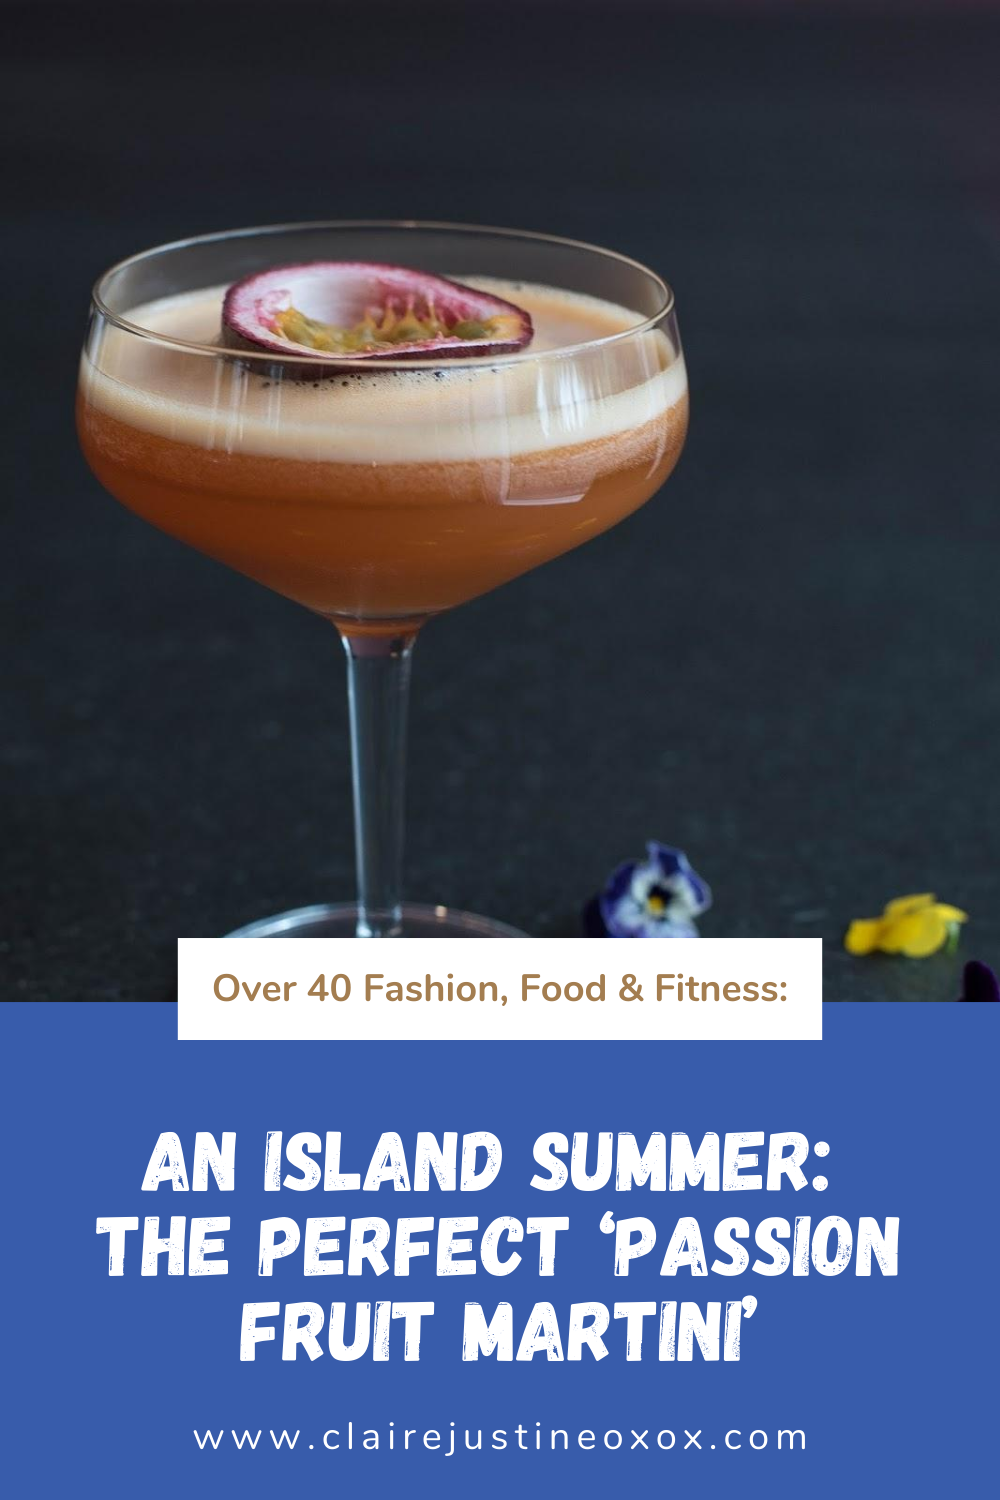 An Island Summer: The Perfect 'Passion Fruit'